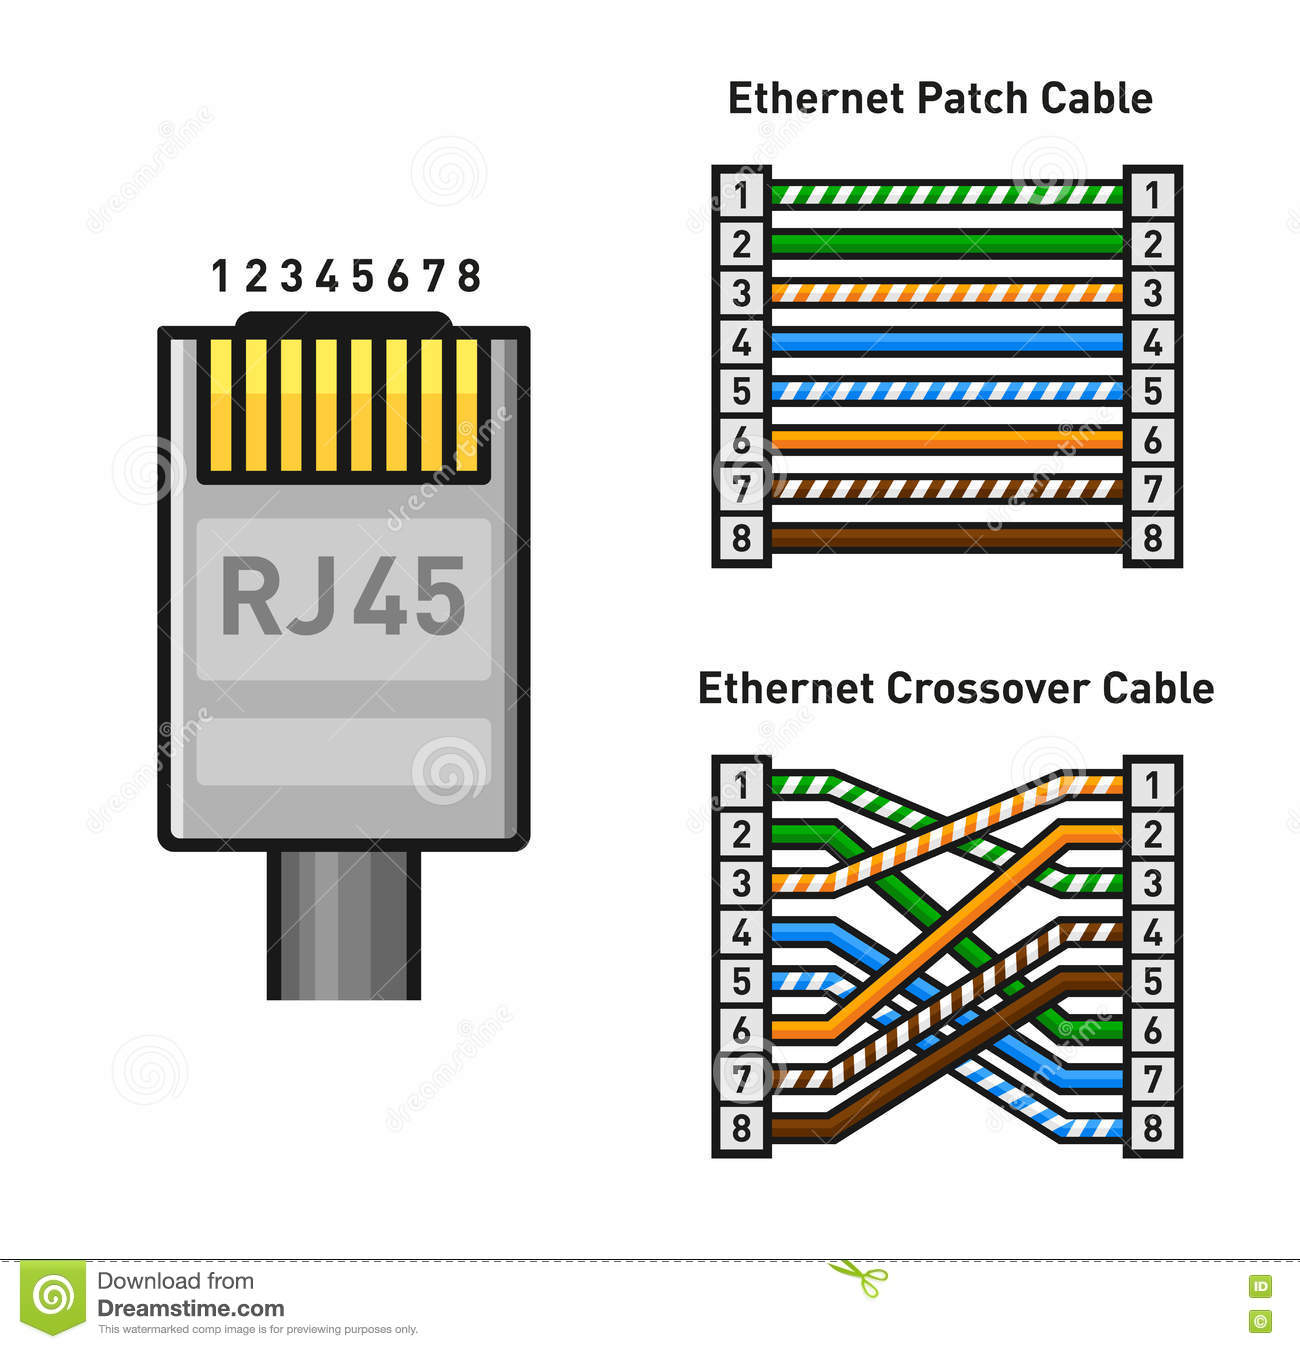 crossover cable wiring diagram glowshift trans temp gauge db15 to rj45 cat5e